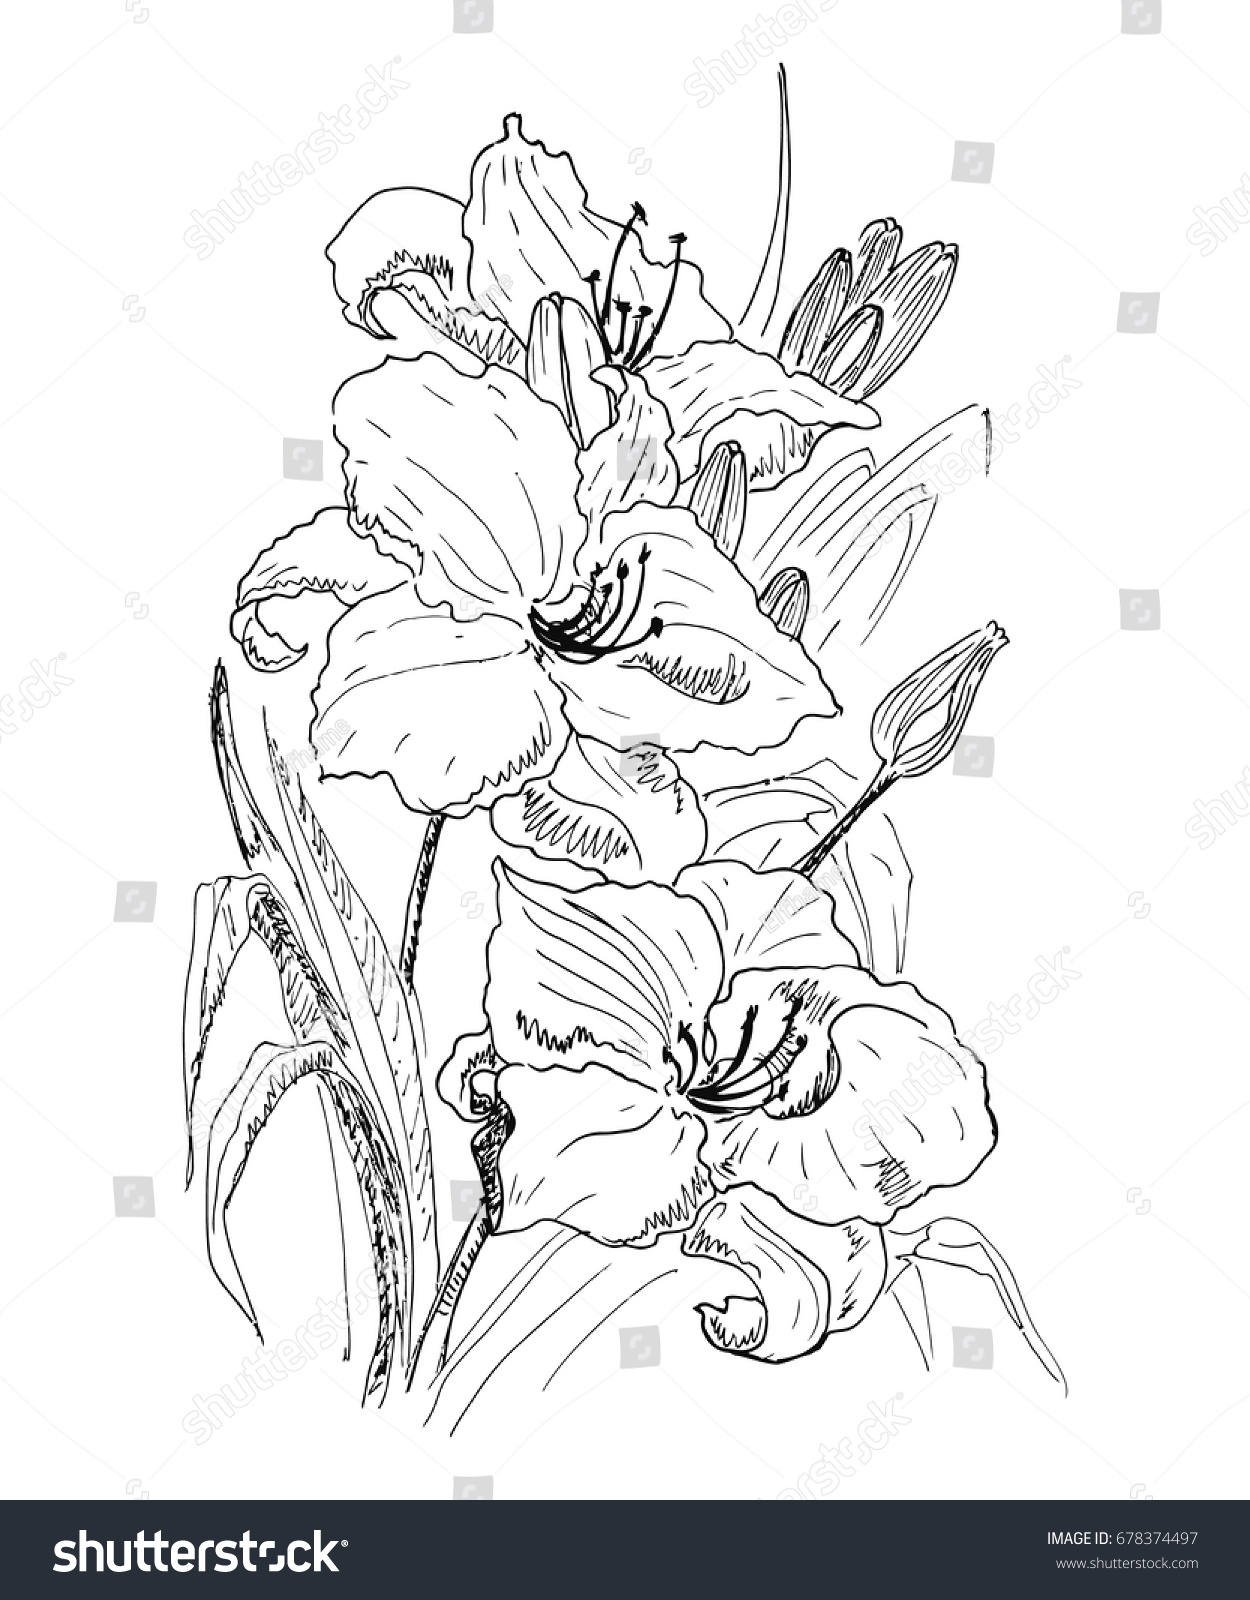 Flower garden sketch - Garden Lilies Flowers Leaves And Buds The Sketch Marker Vector